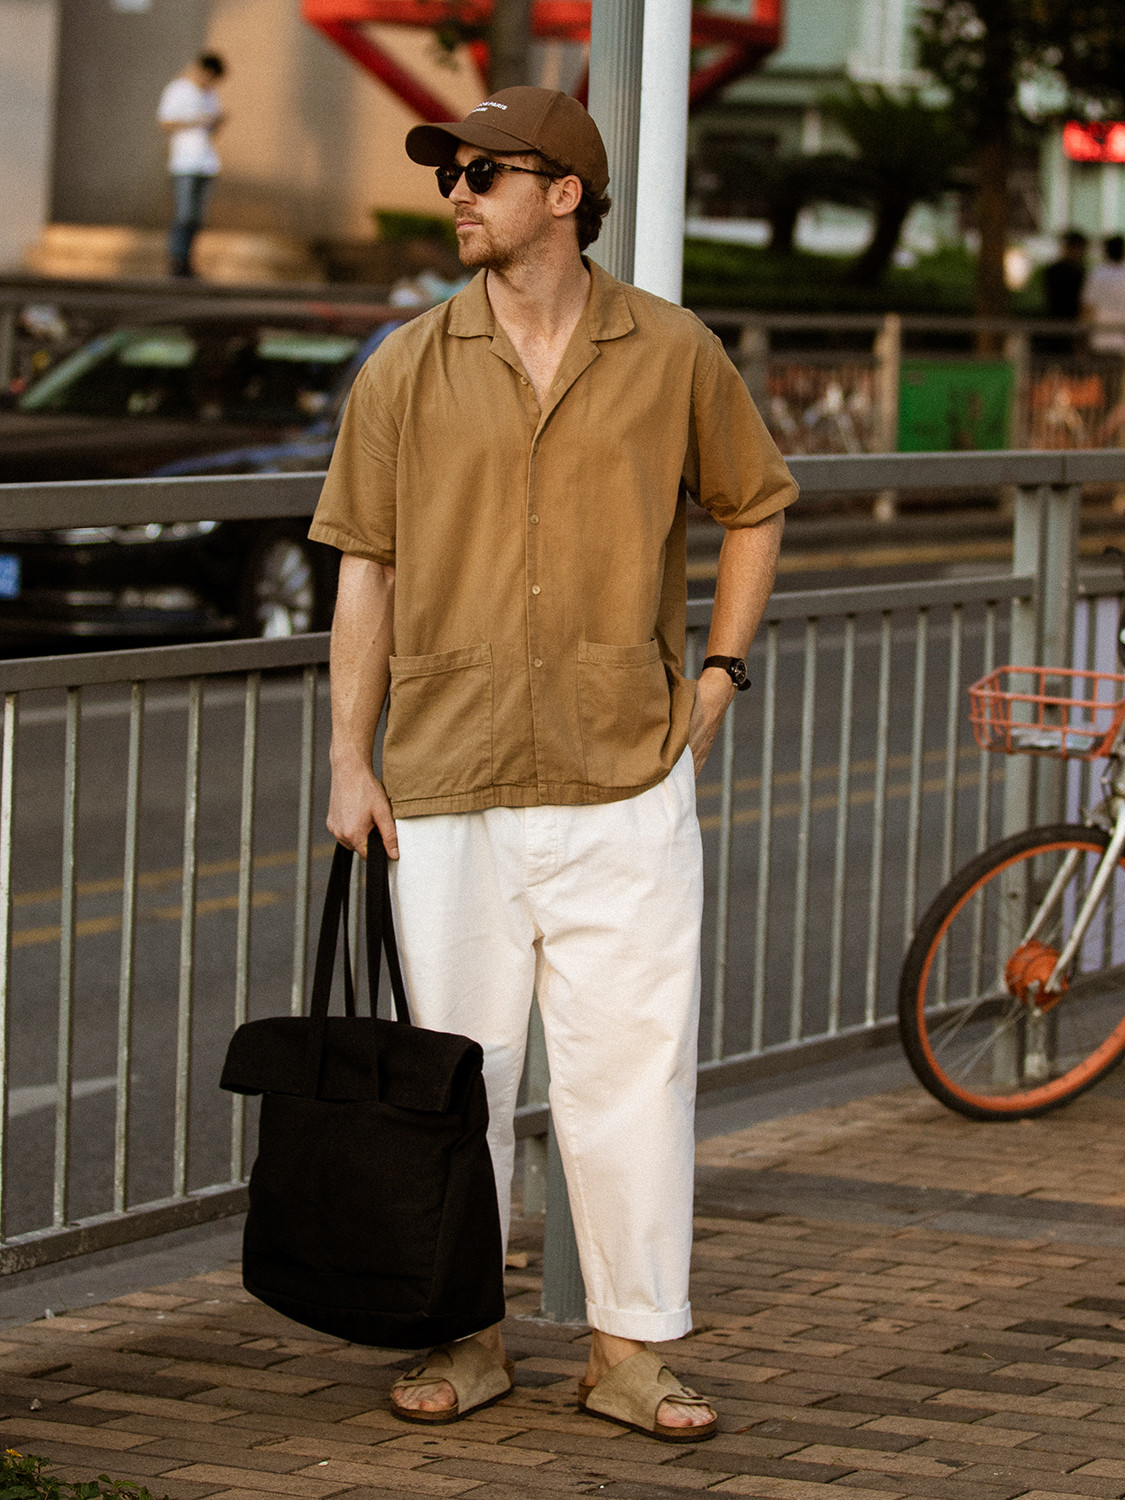 Men's outfit idea for 2021 with neutral short-sleeved plain shirt, white chinos, brown baseball / snapback cap. Suitable for summer.